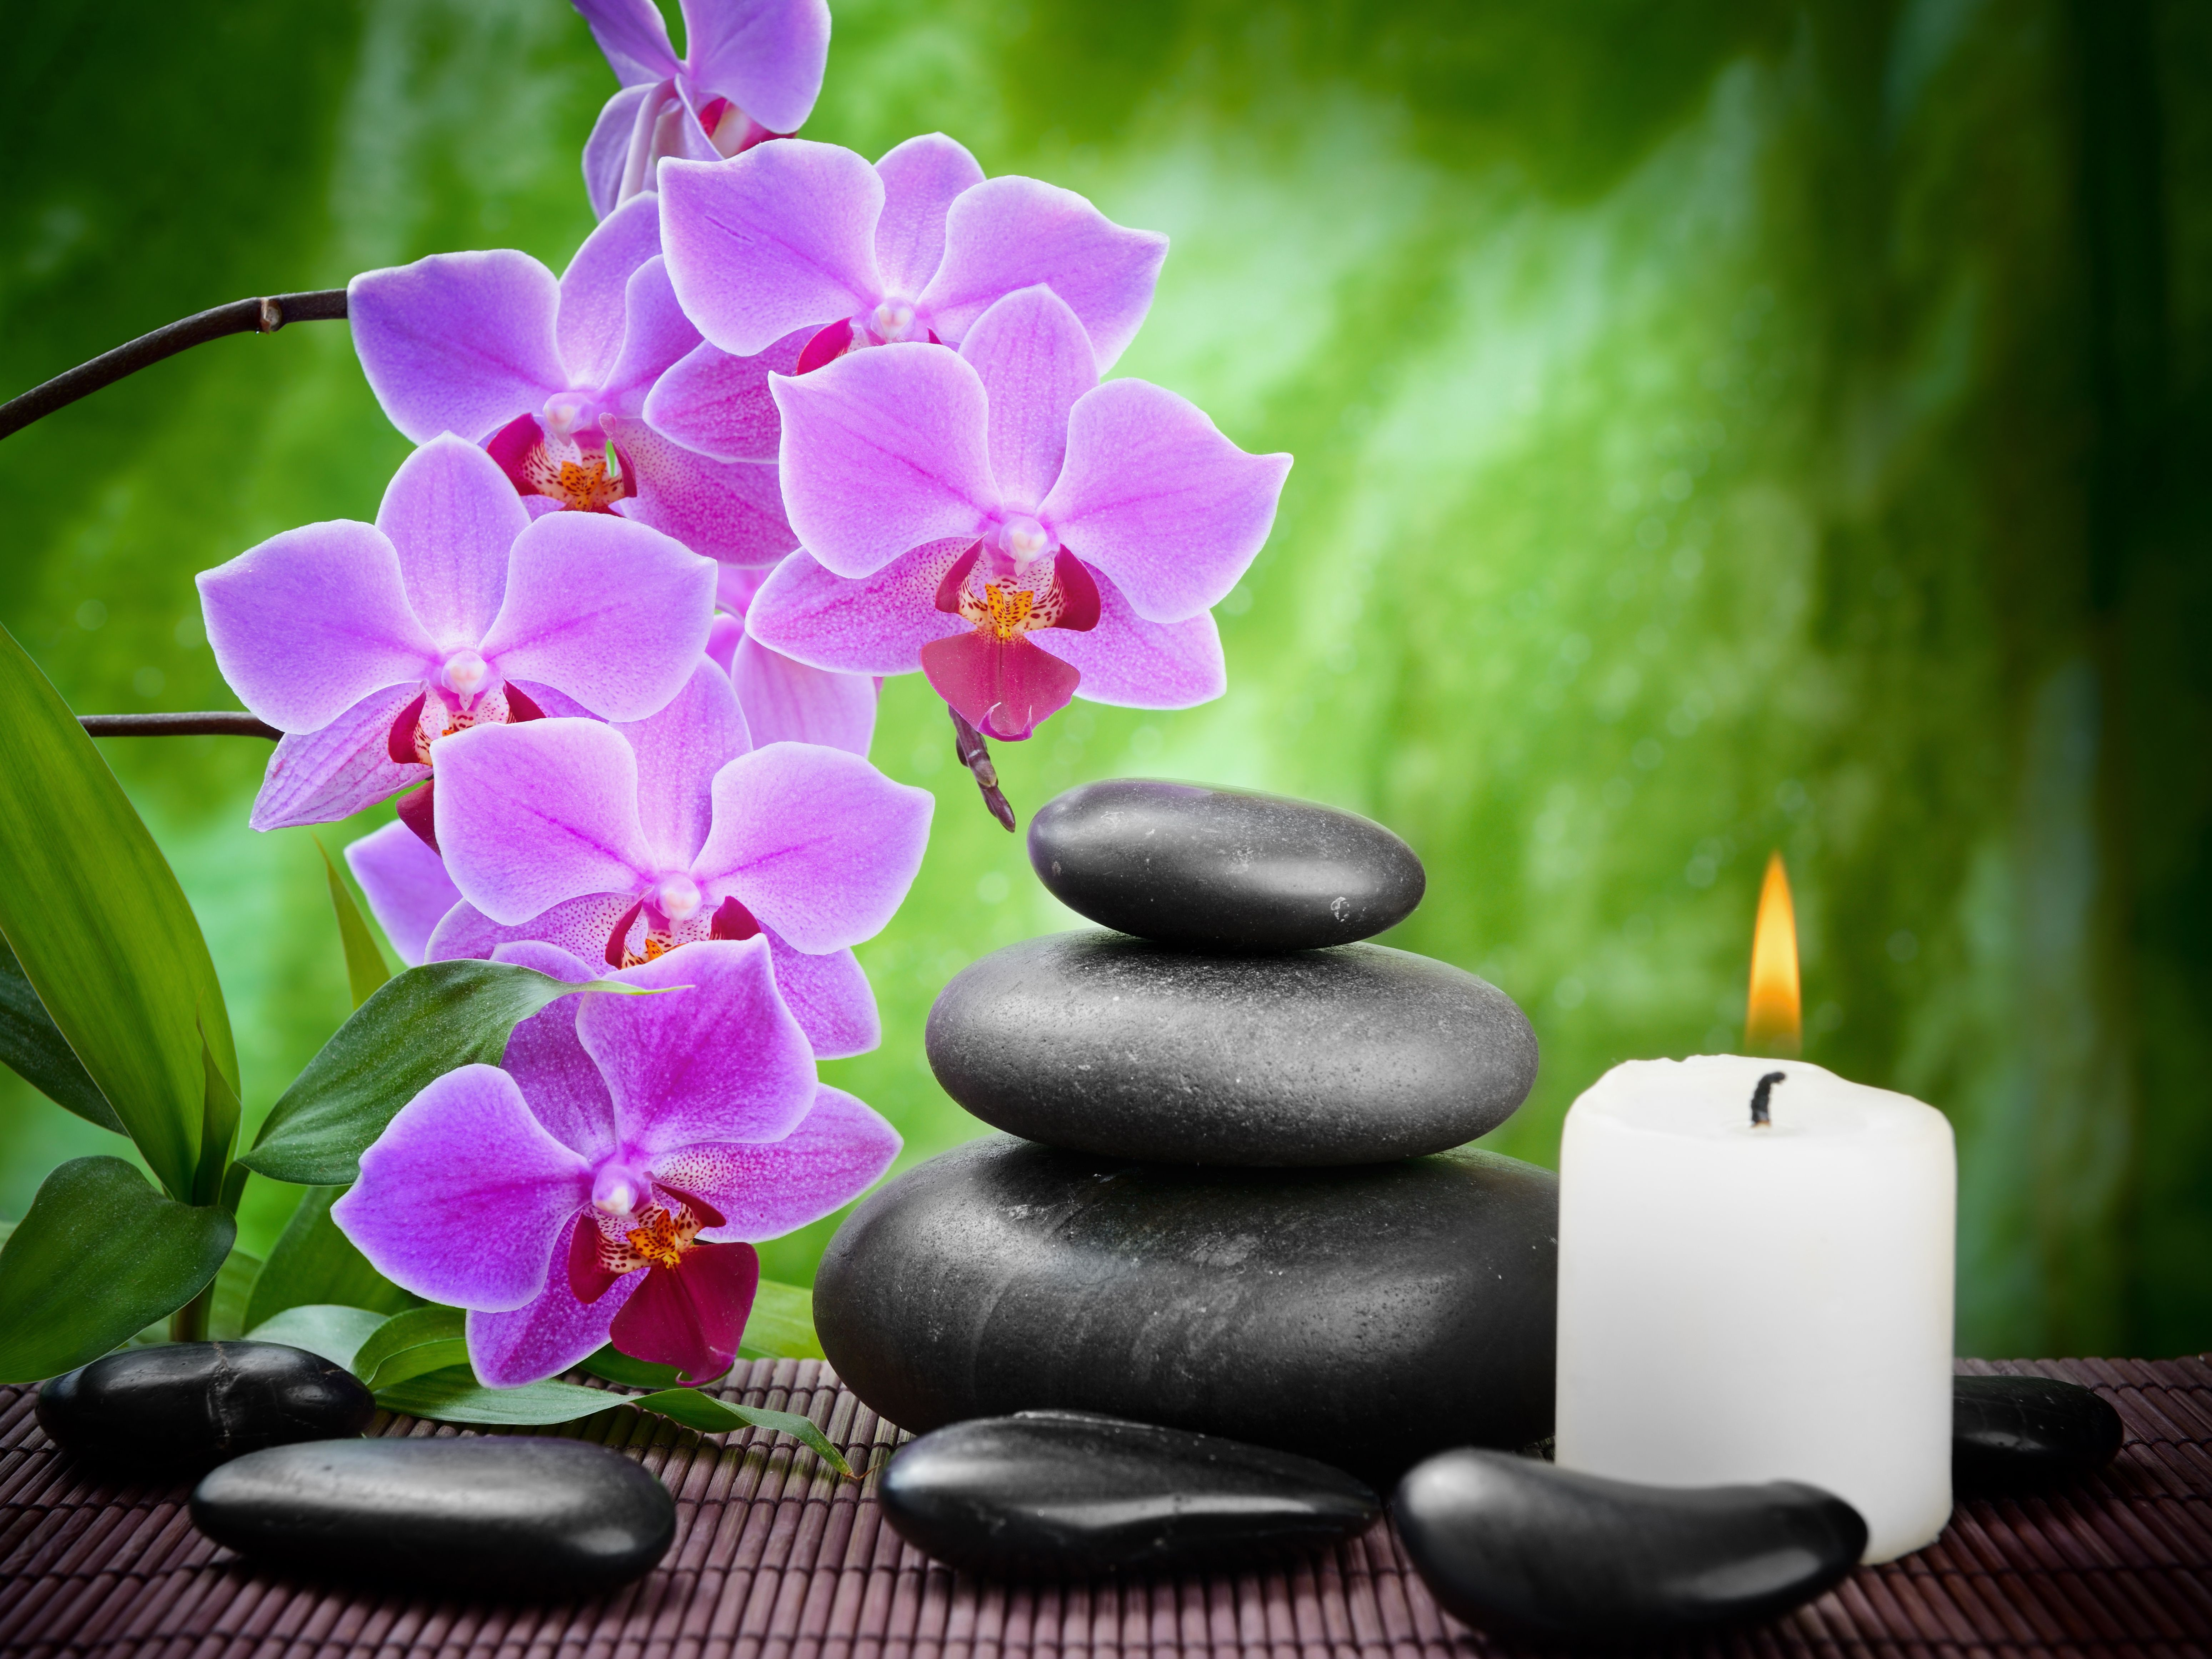 Spa Orchids Wallpapers Top Free Spa Orchids Backgrounds Wallpaperaccess